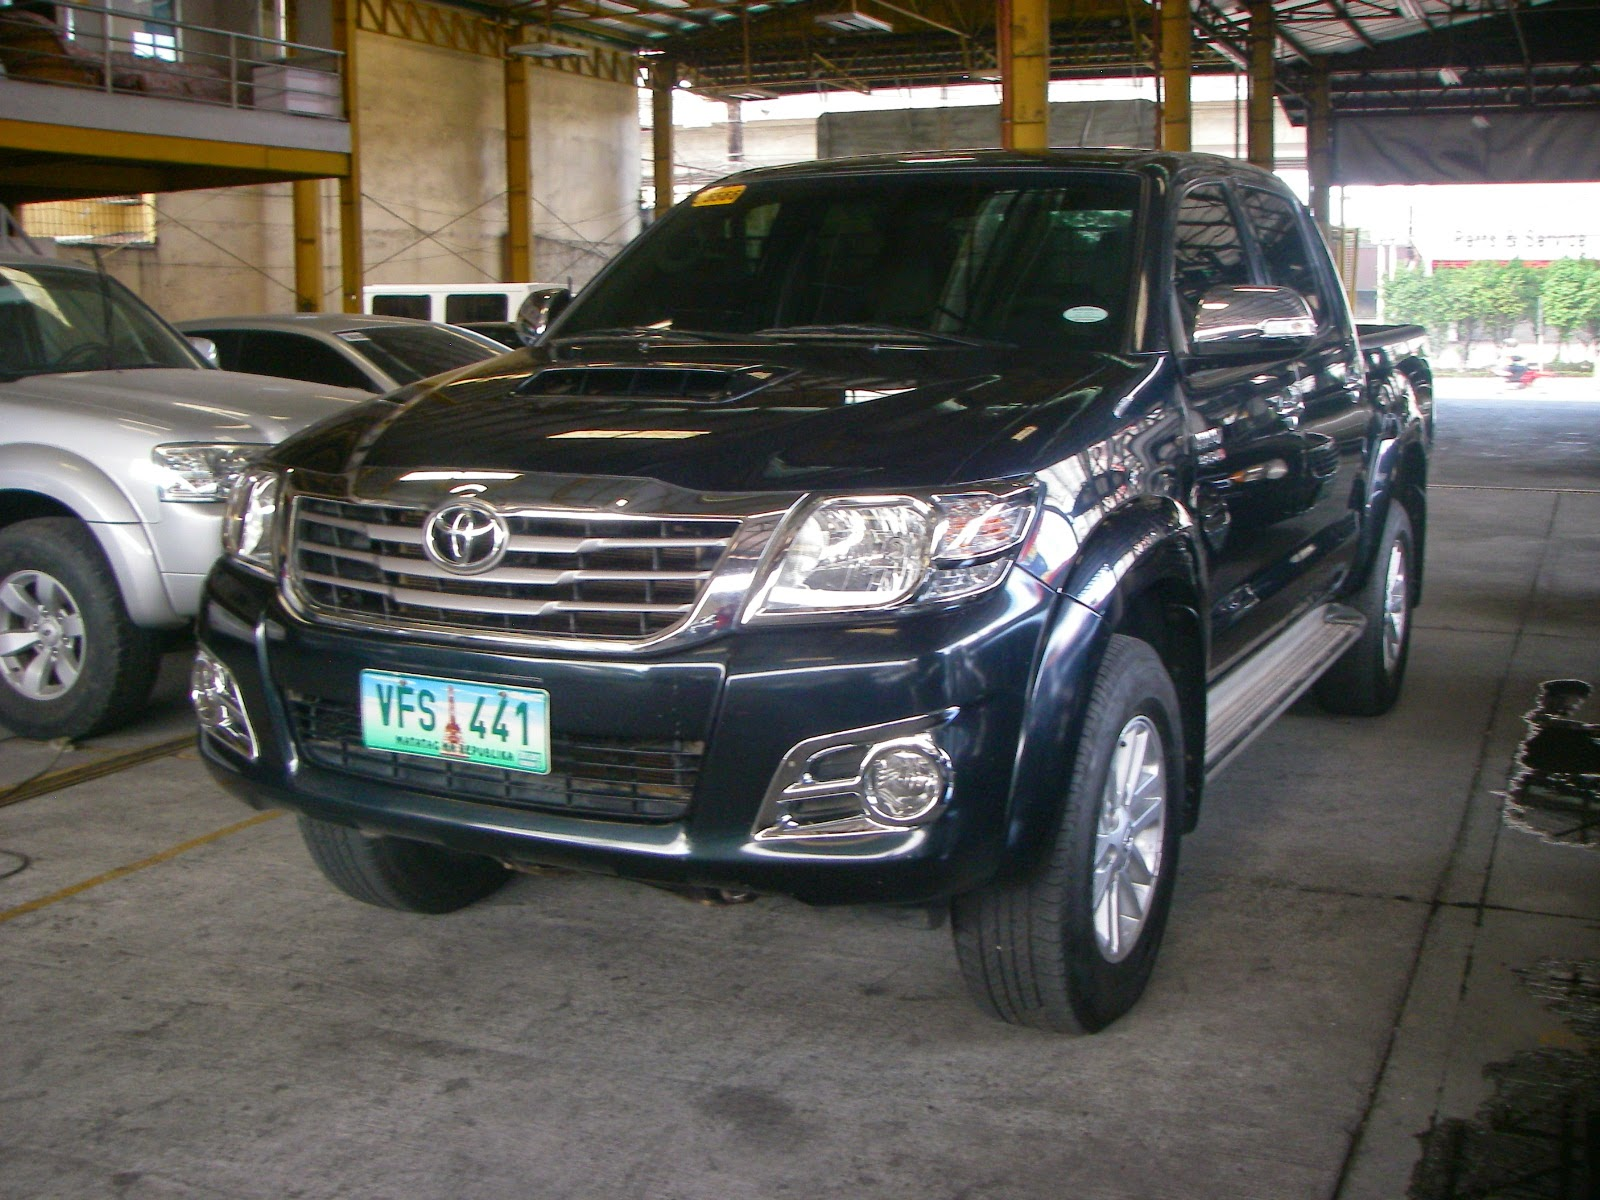 cars for sale in the philippines 2013 toyota hilux 4x4 manual diesel. Black Bedroom Furniture Sets. Home Design Ideas